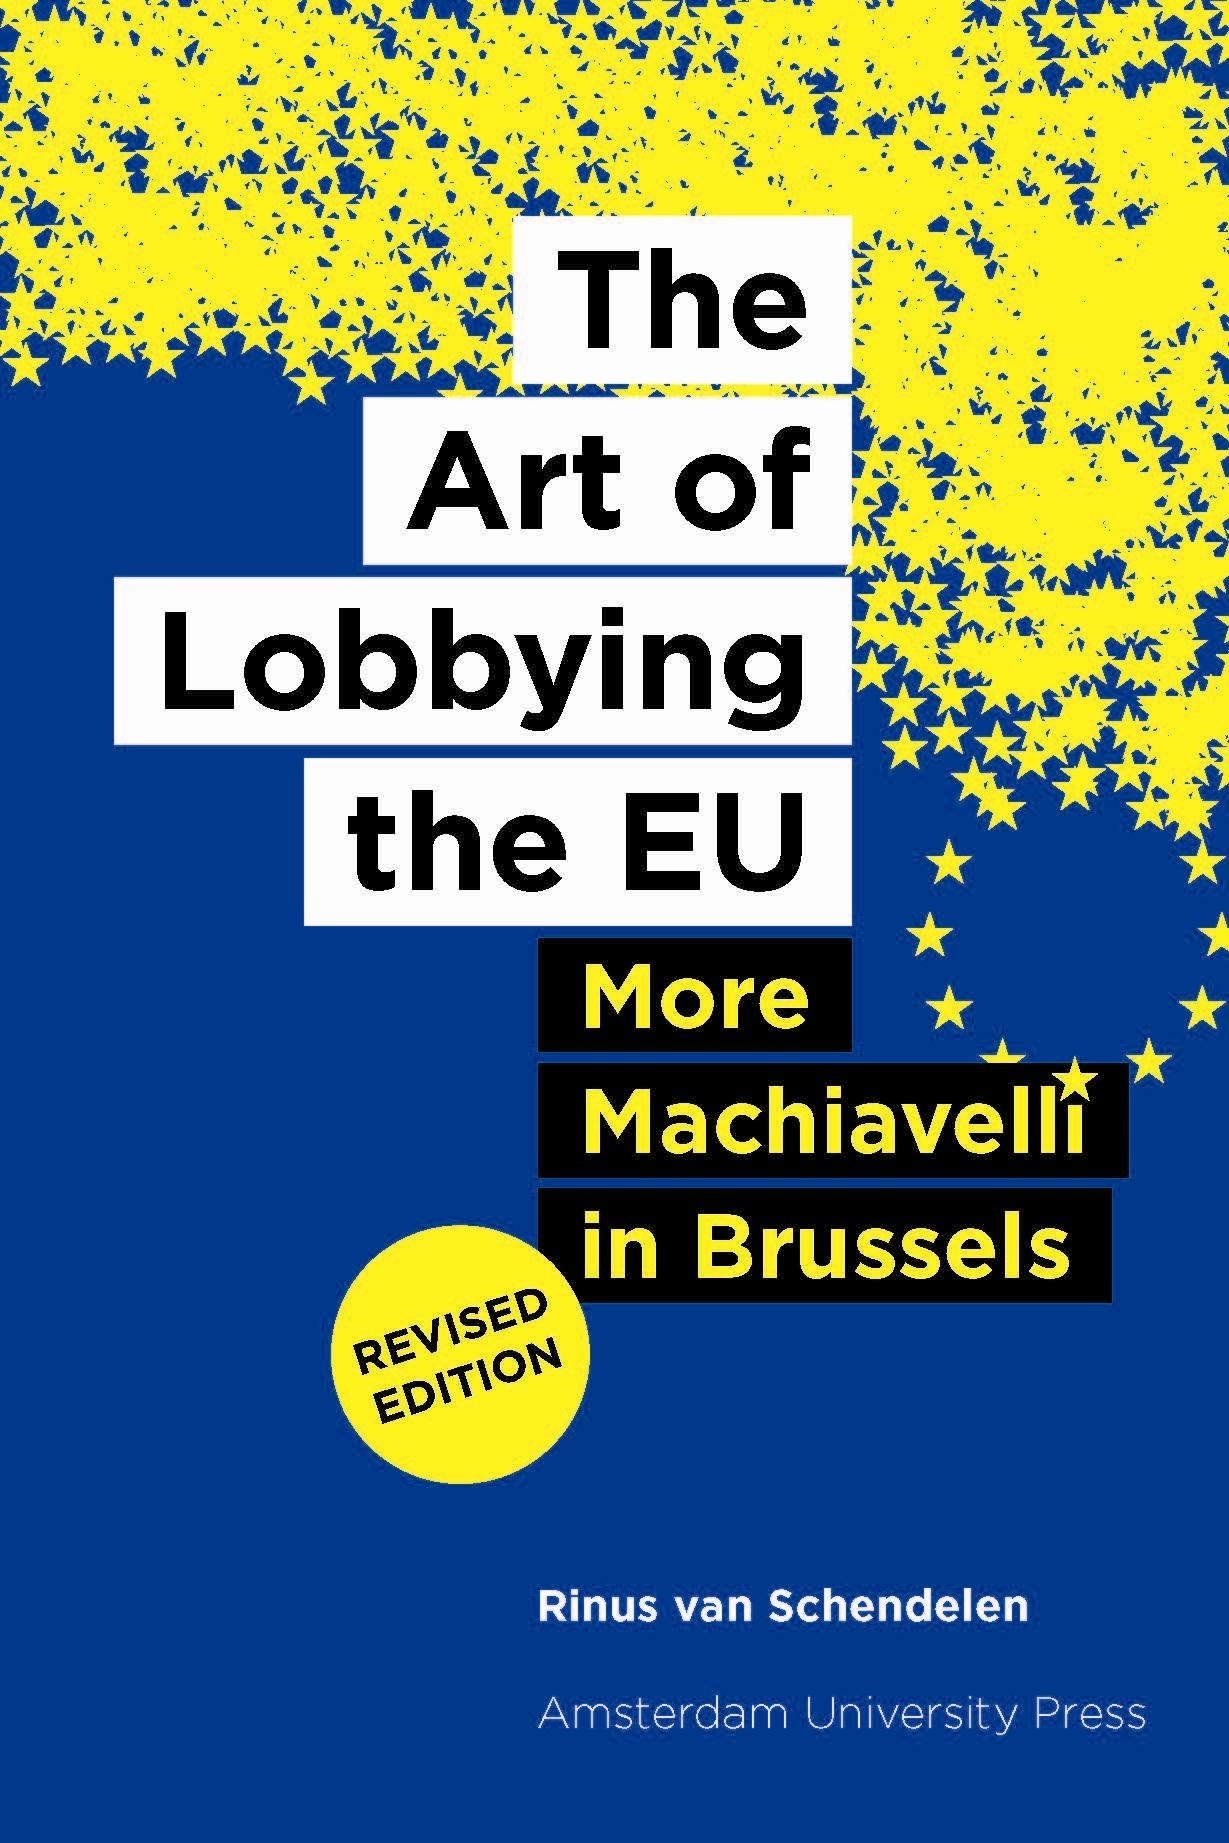 The Art of Lobbying the EU - More Machiavelli in Brussels